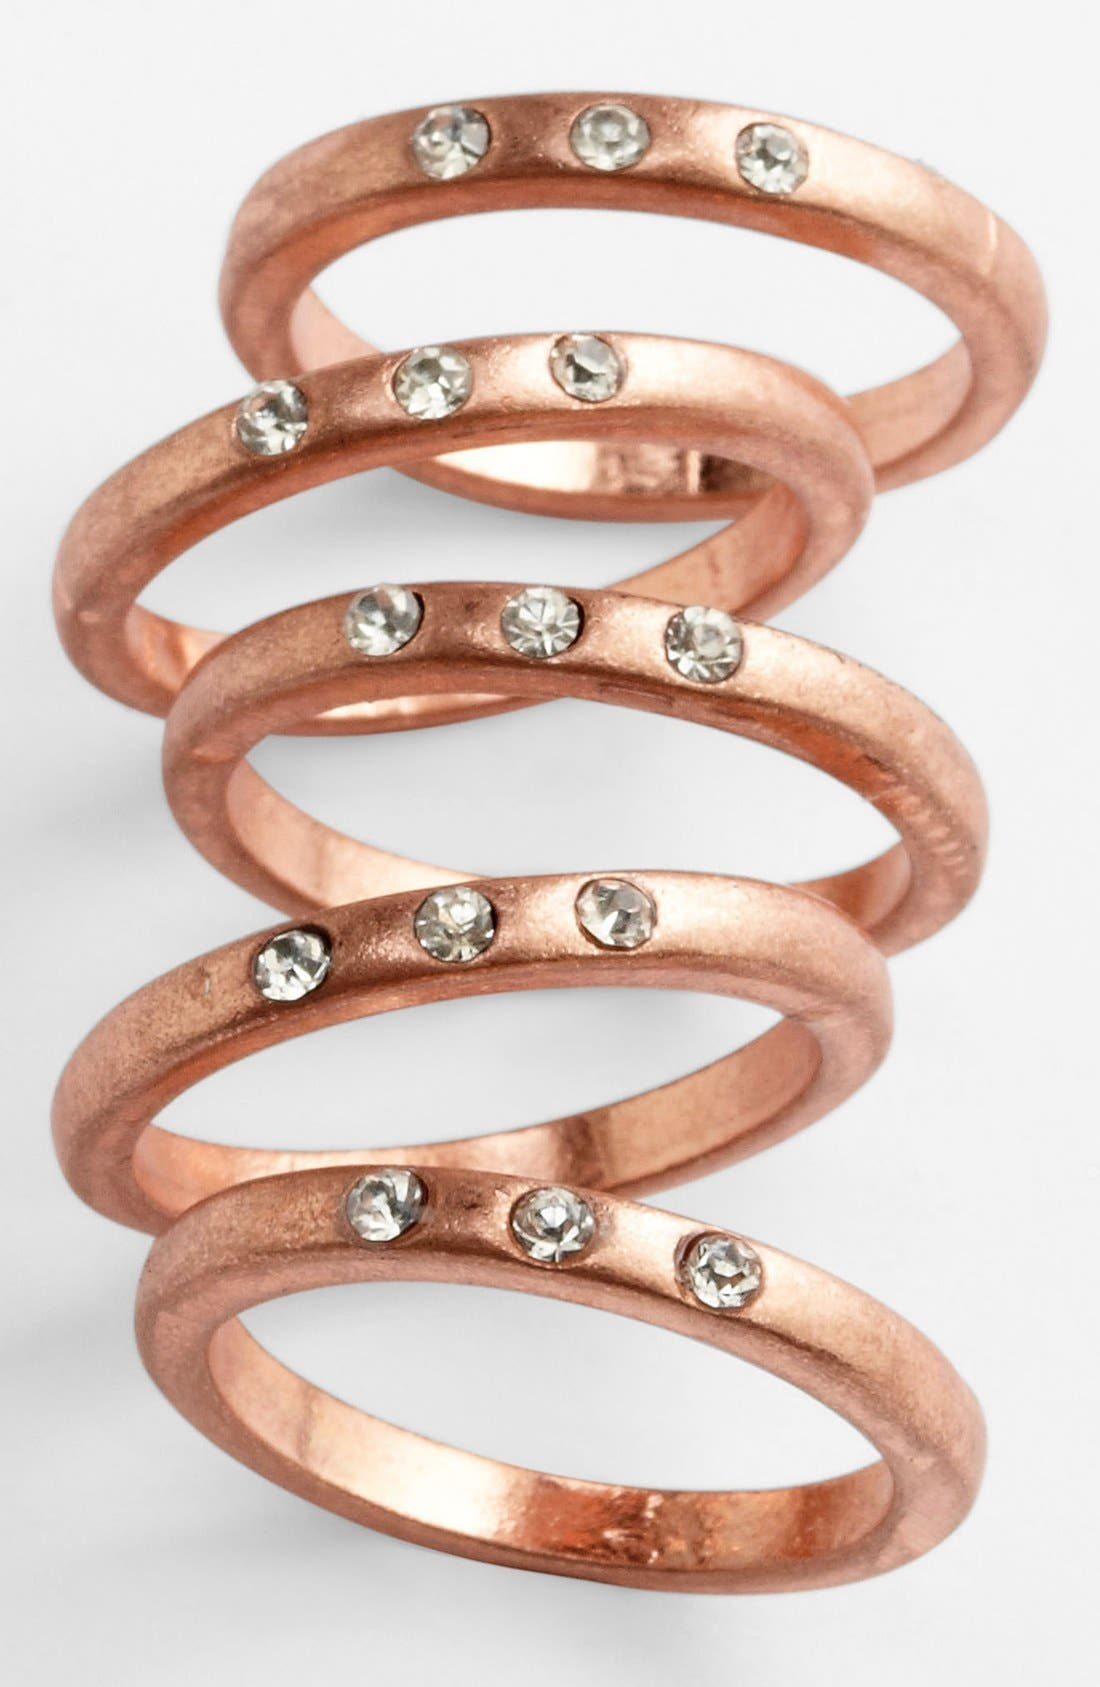 Main Image - Carole Stone Crystal Stackable Rings (Set of 5)